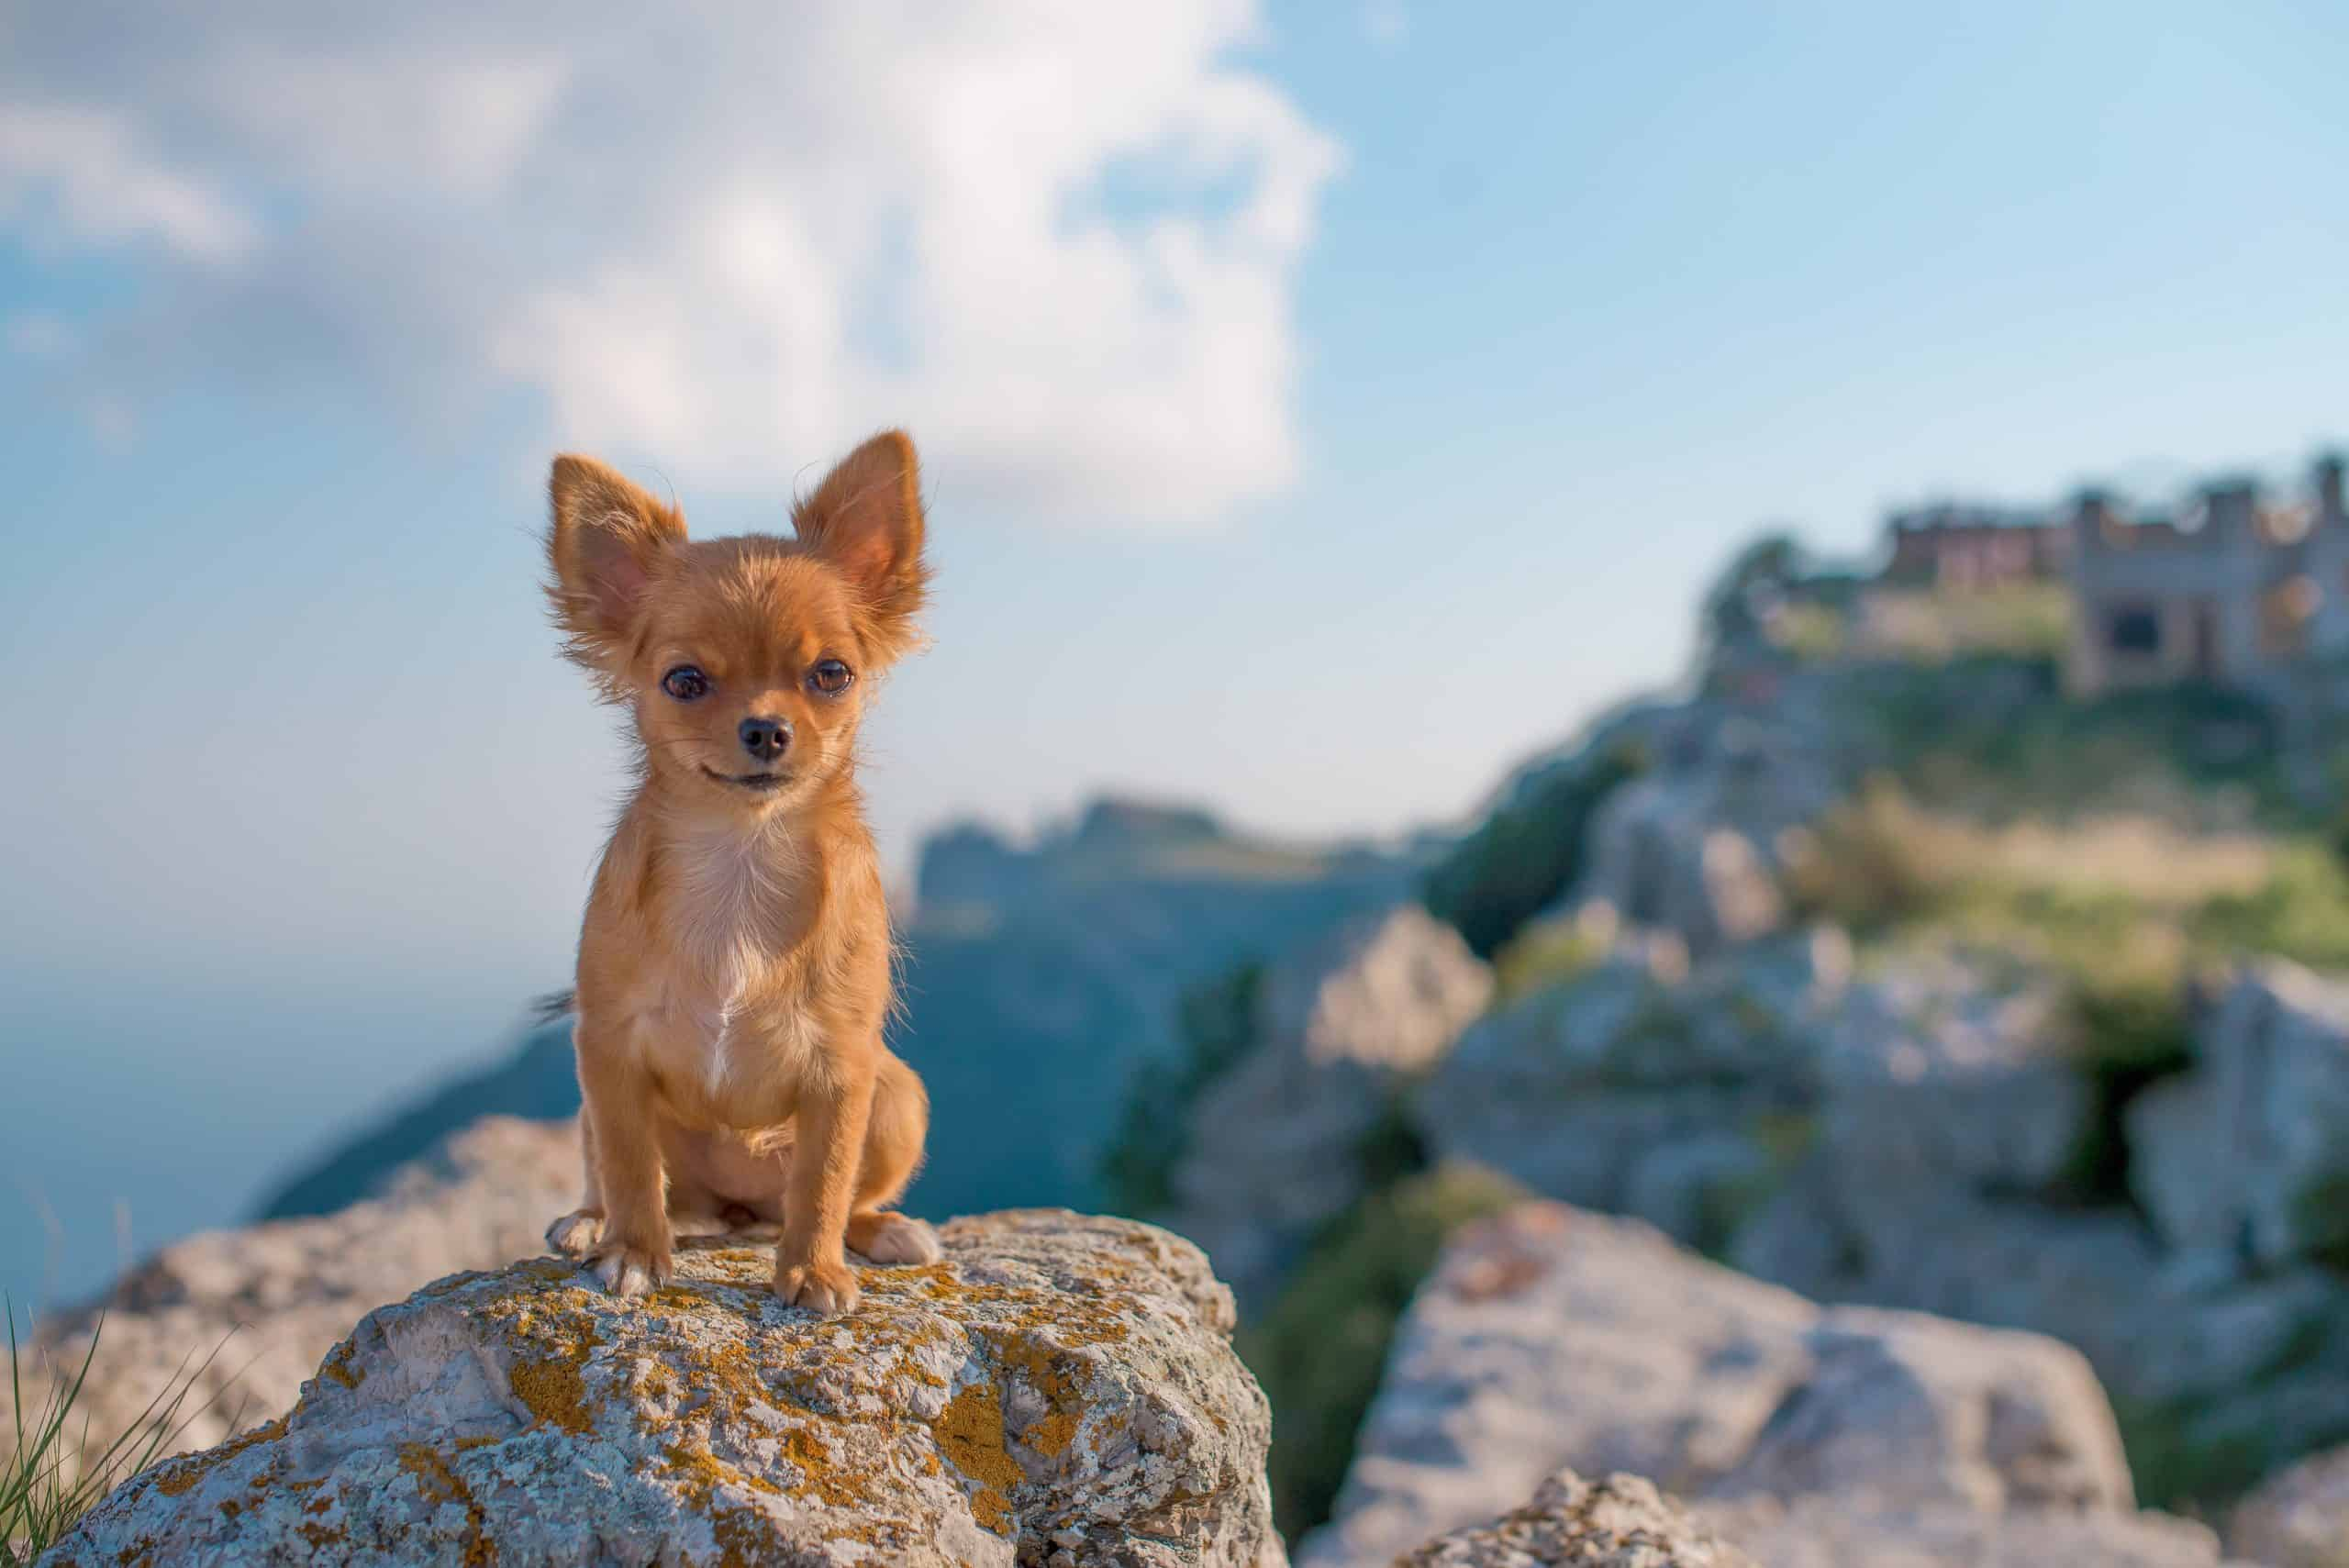 Chihuahua sits on rocks near camp site. Small dogs like Chihuahuas may get exhausted halfway through a hike. But because they are small, you can just zip them into the front of your coat and give them a lift the rest of the way.